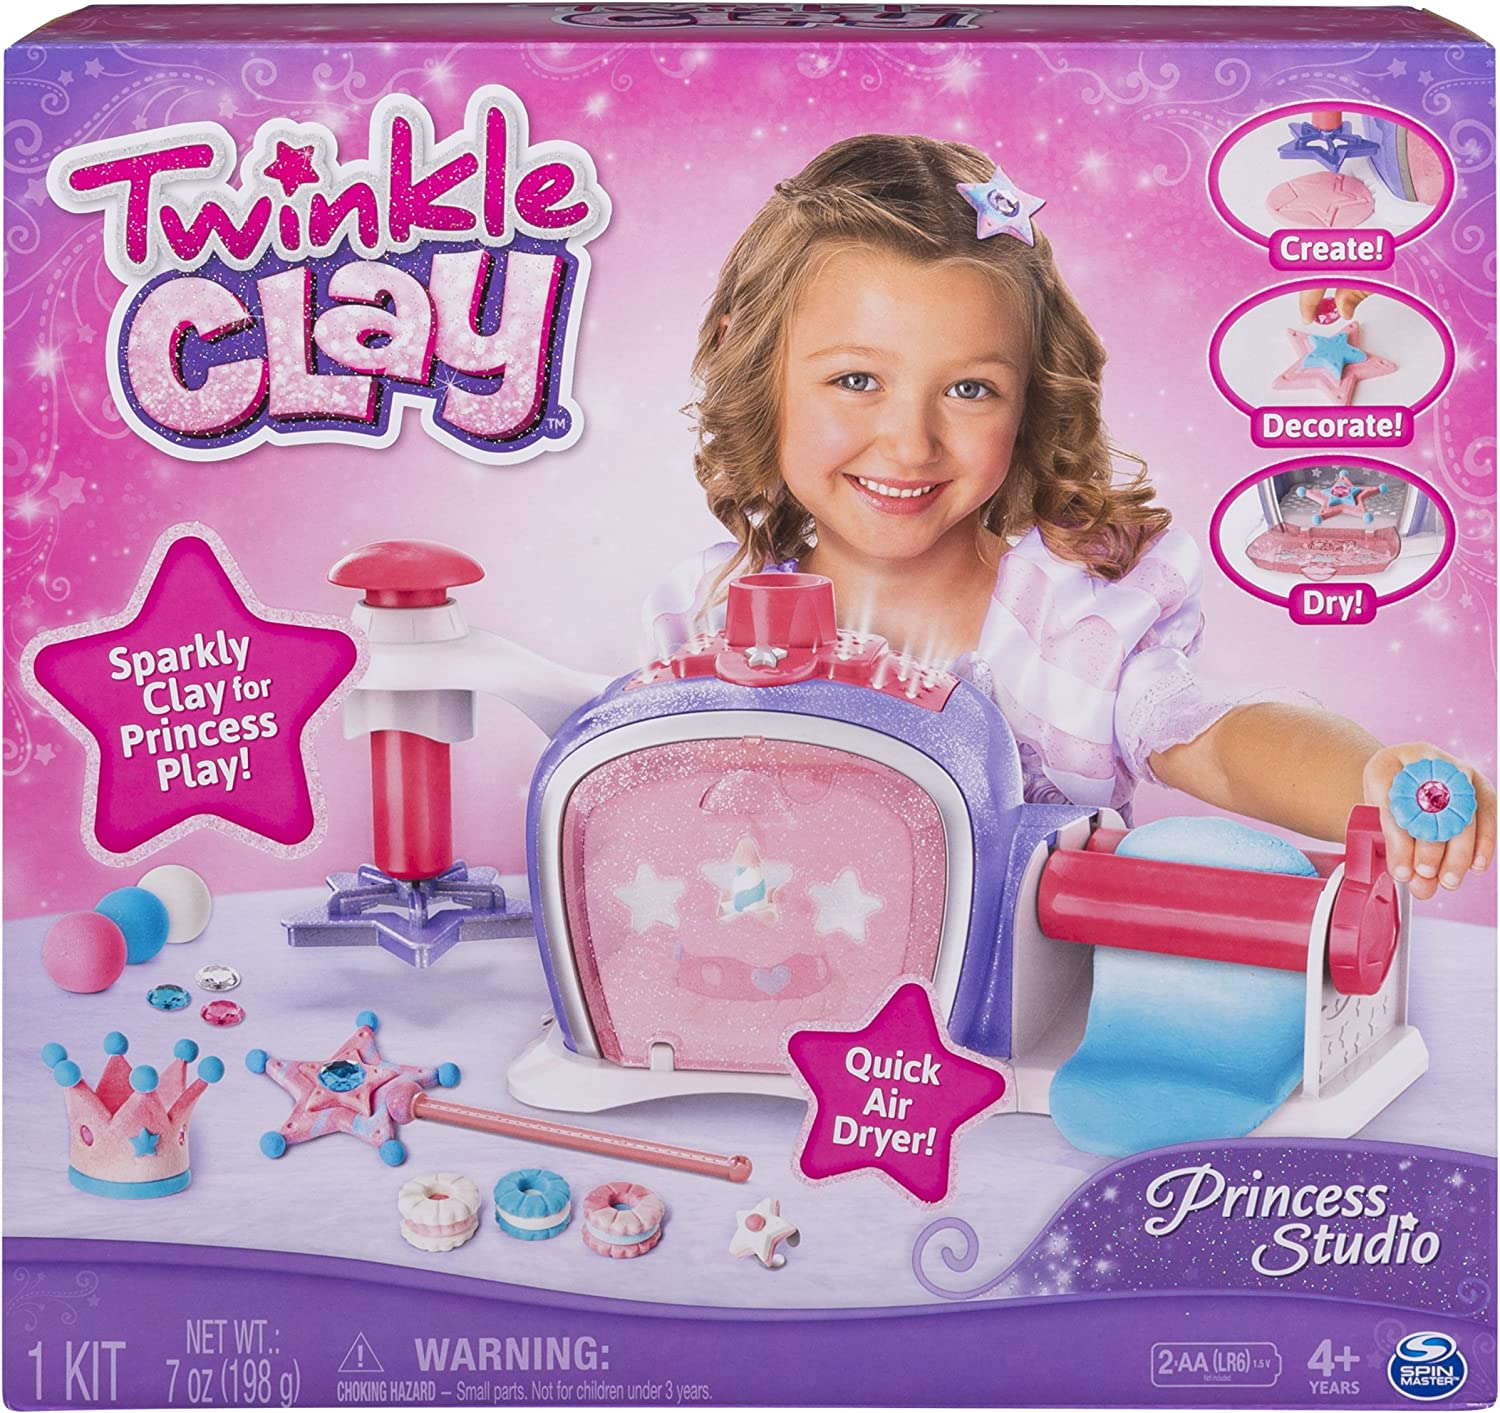 Princess Studio Makes Sparkly Air-Dry Clay Creations Twinkle Clay for Ages 4 and Up